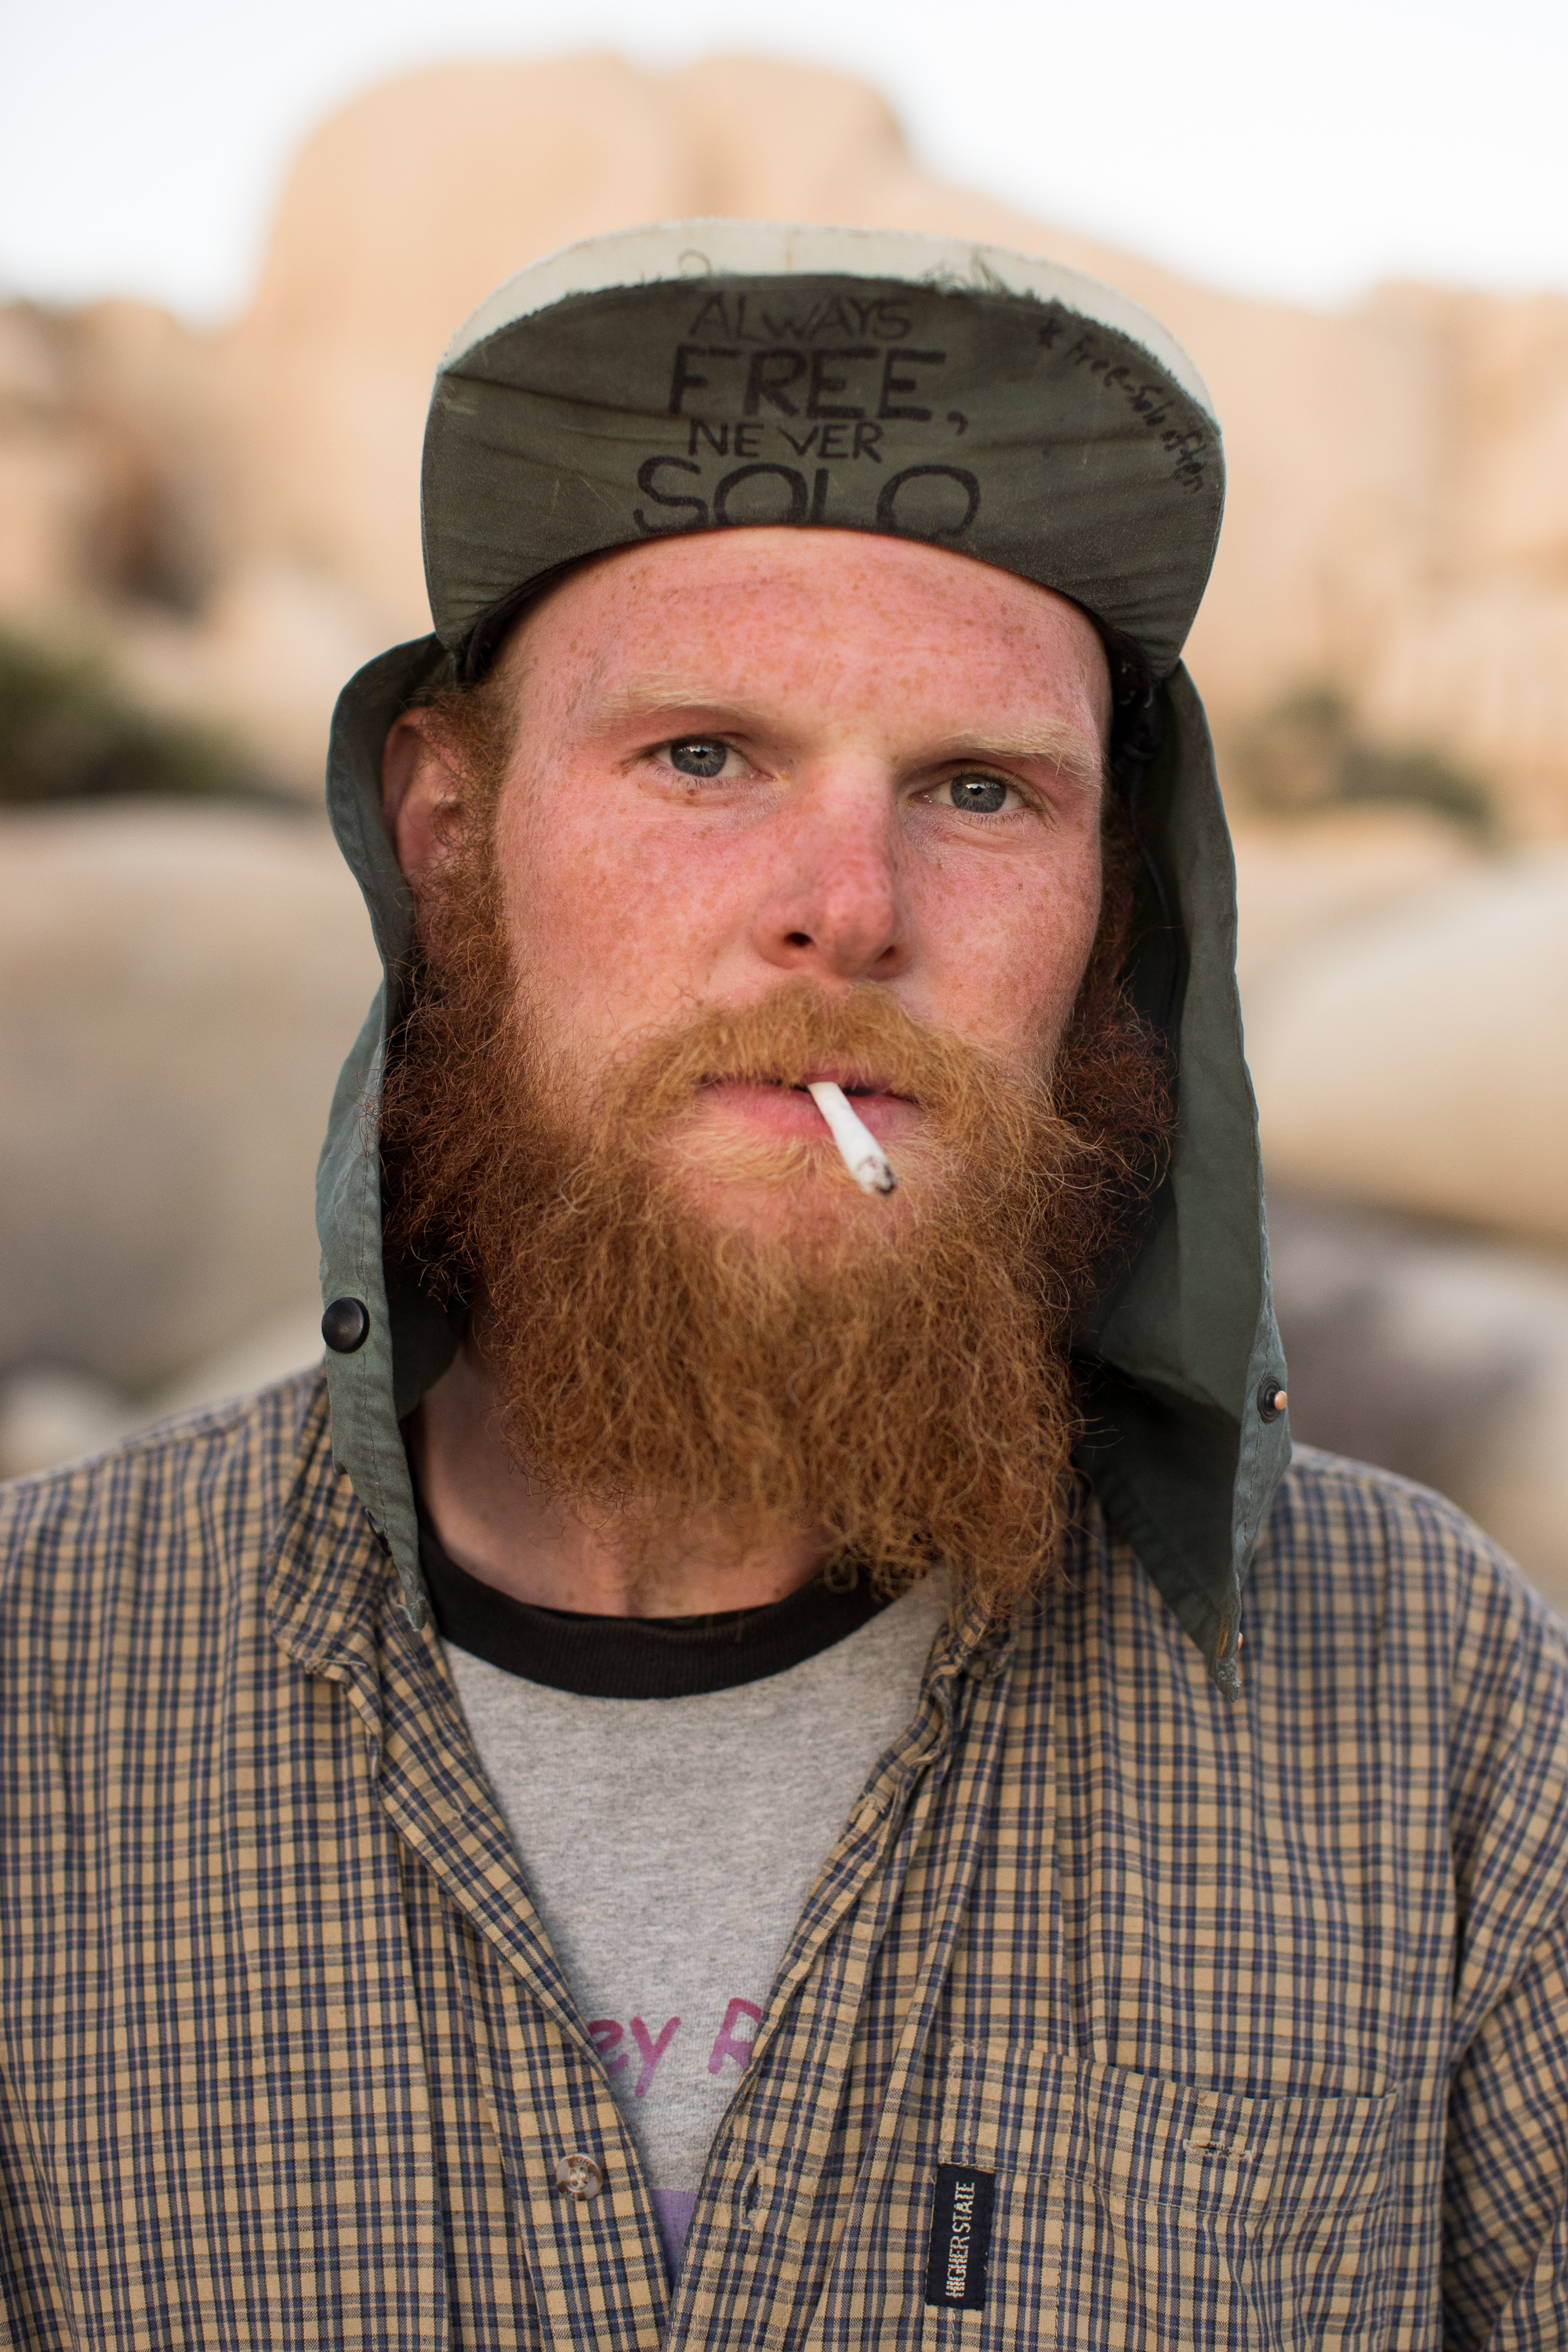 "Evan ""Red Beard"", 27, has been unemployed since July, when he last worked as an industrial pipe fitter. Since coming to Joshua Tree last December, he has worn out his only pair of shoes, and now walks around barefoot. He traveled to the park alone, and with $400 to his name, he remains relaxed, upbeat, and extremely carefree."